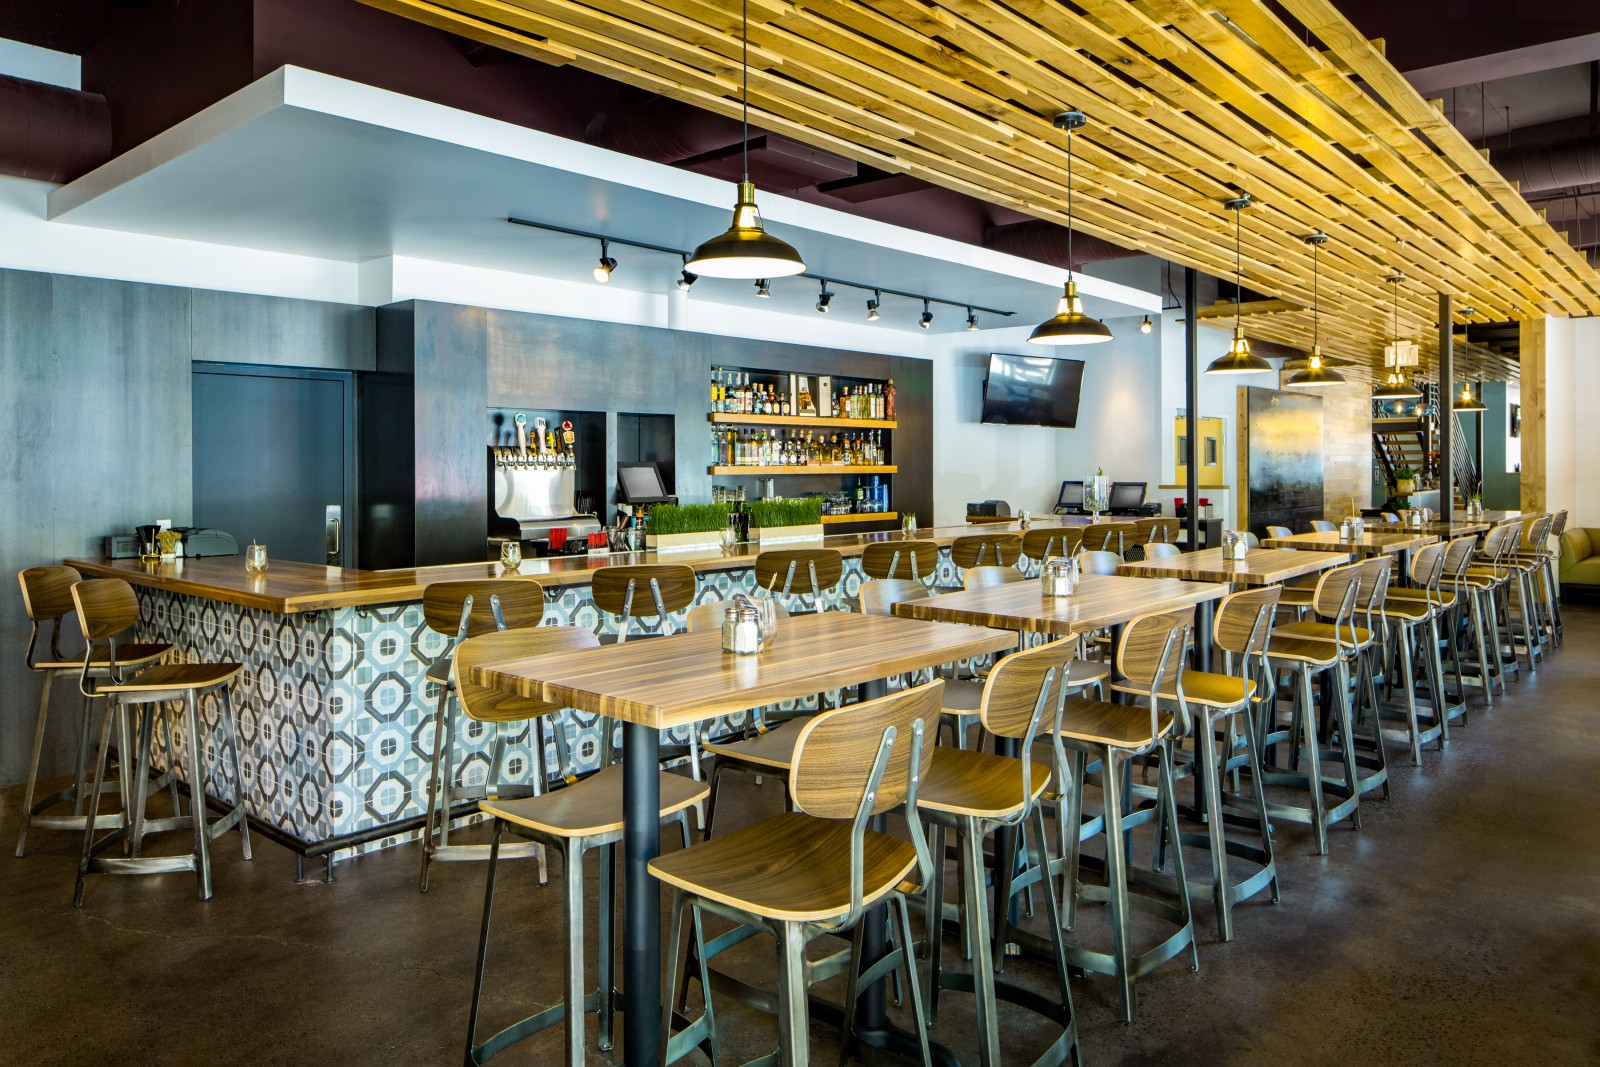 Restaurant and Hospitality Design Denver